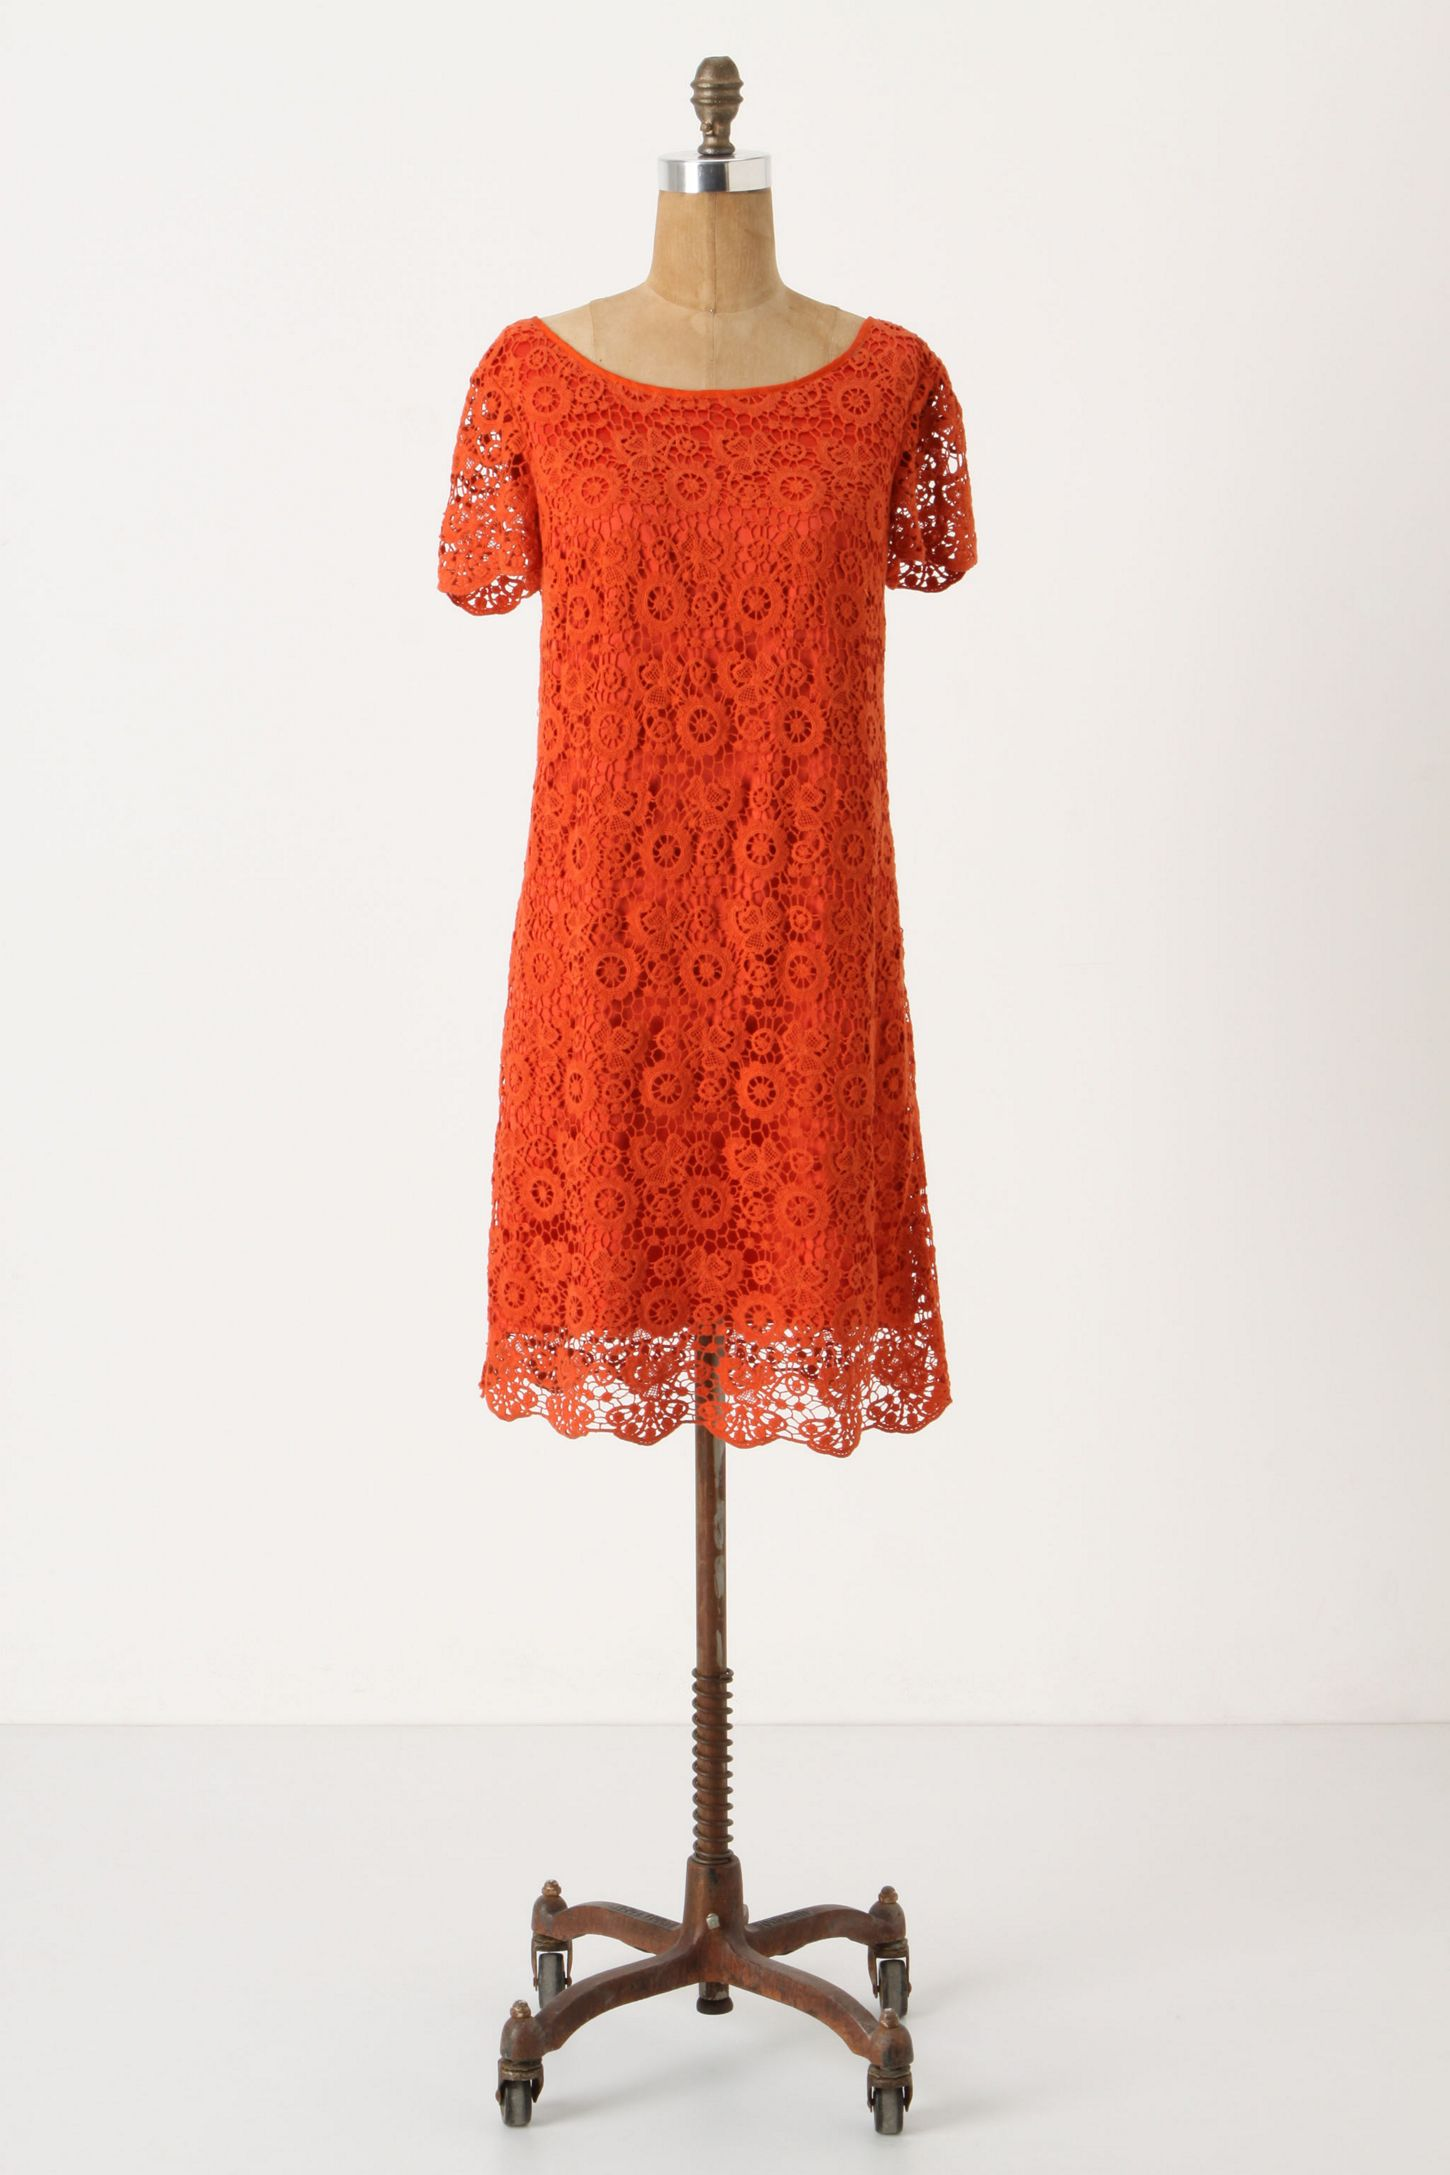 c4419f6fbb46 Horkelia Shift | Anthropologie